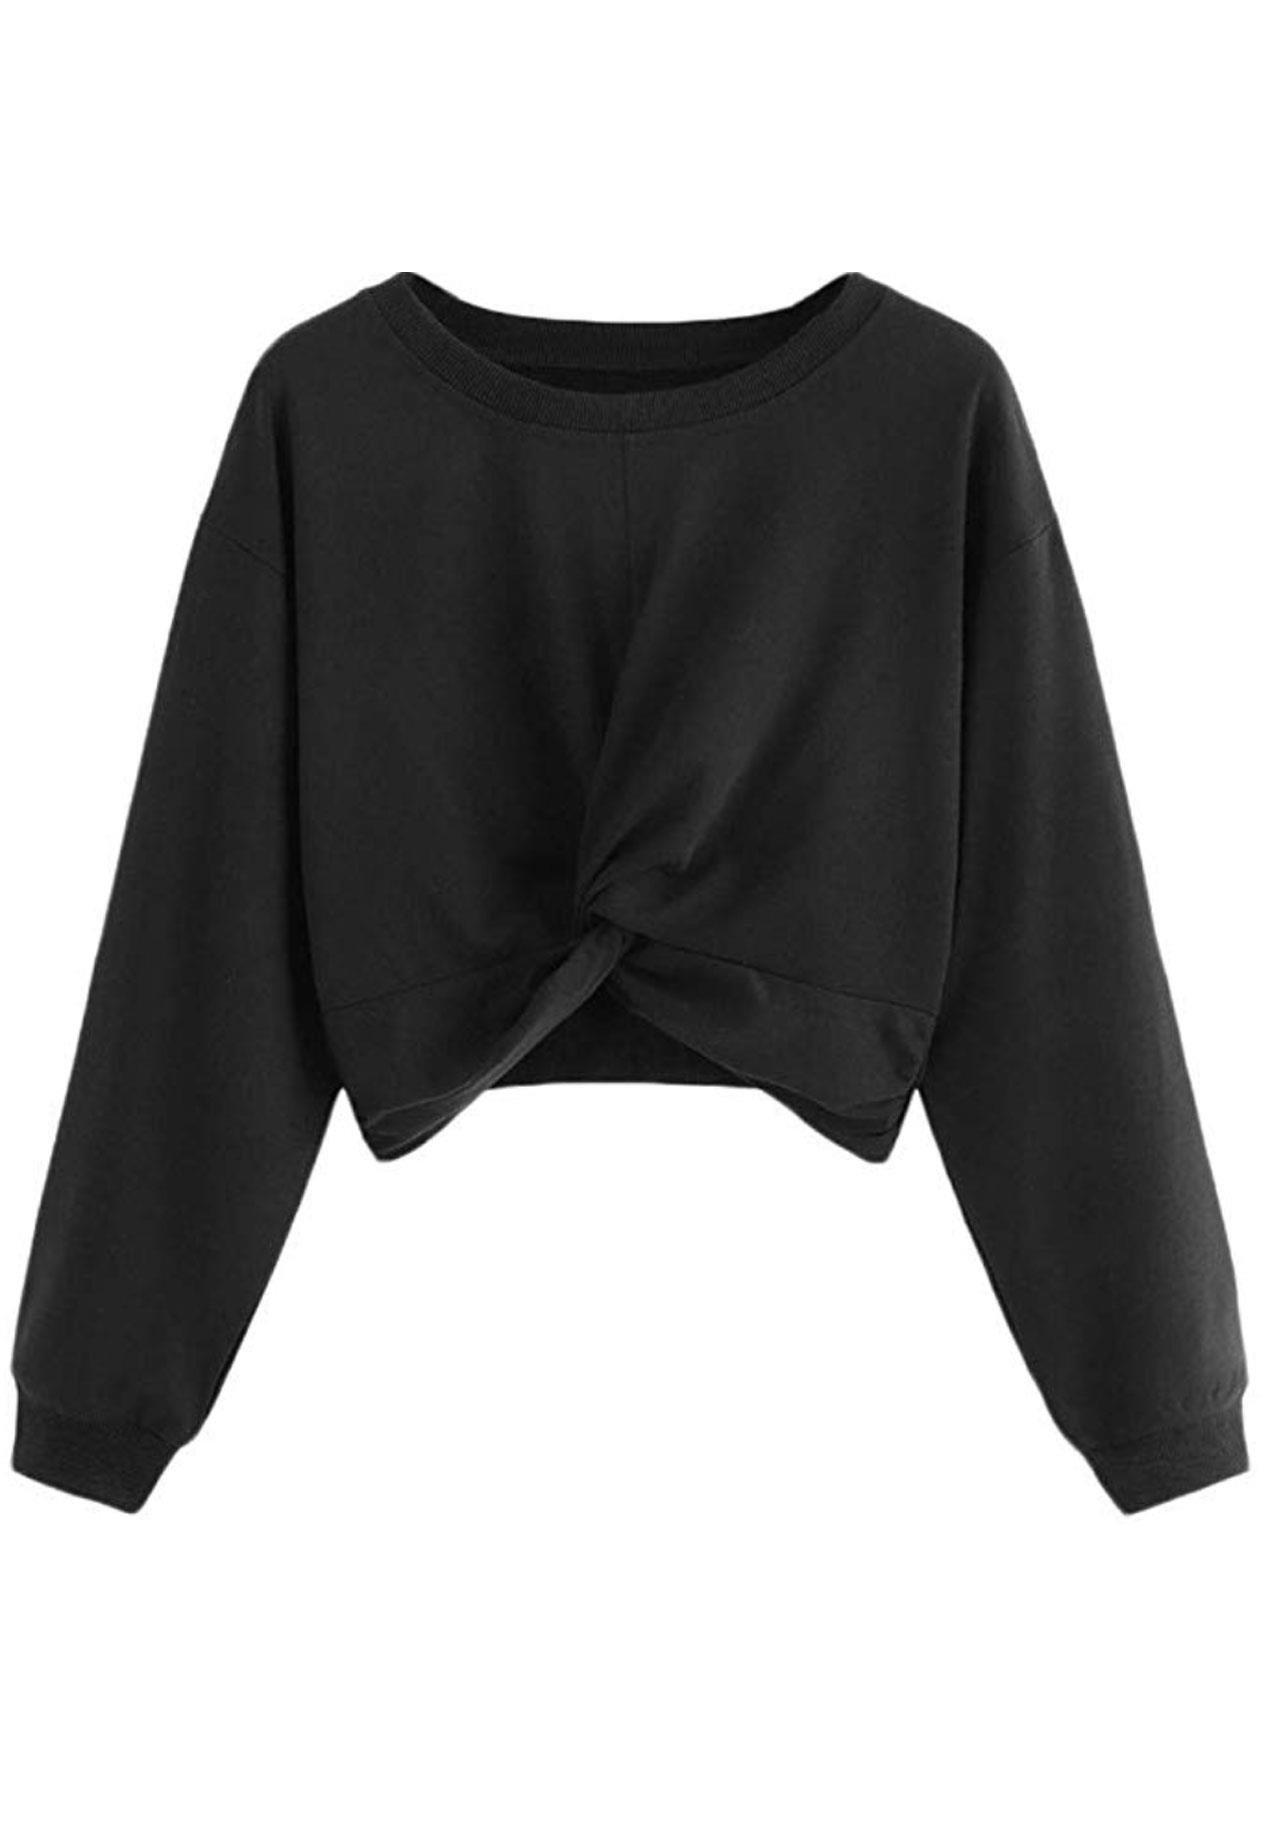 Sudadera 'cropped' negra de Amazon